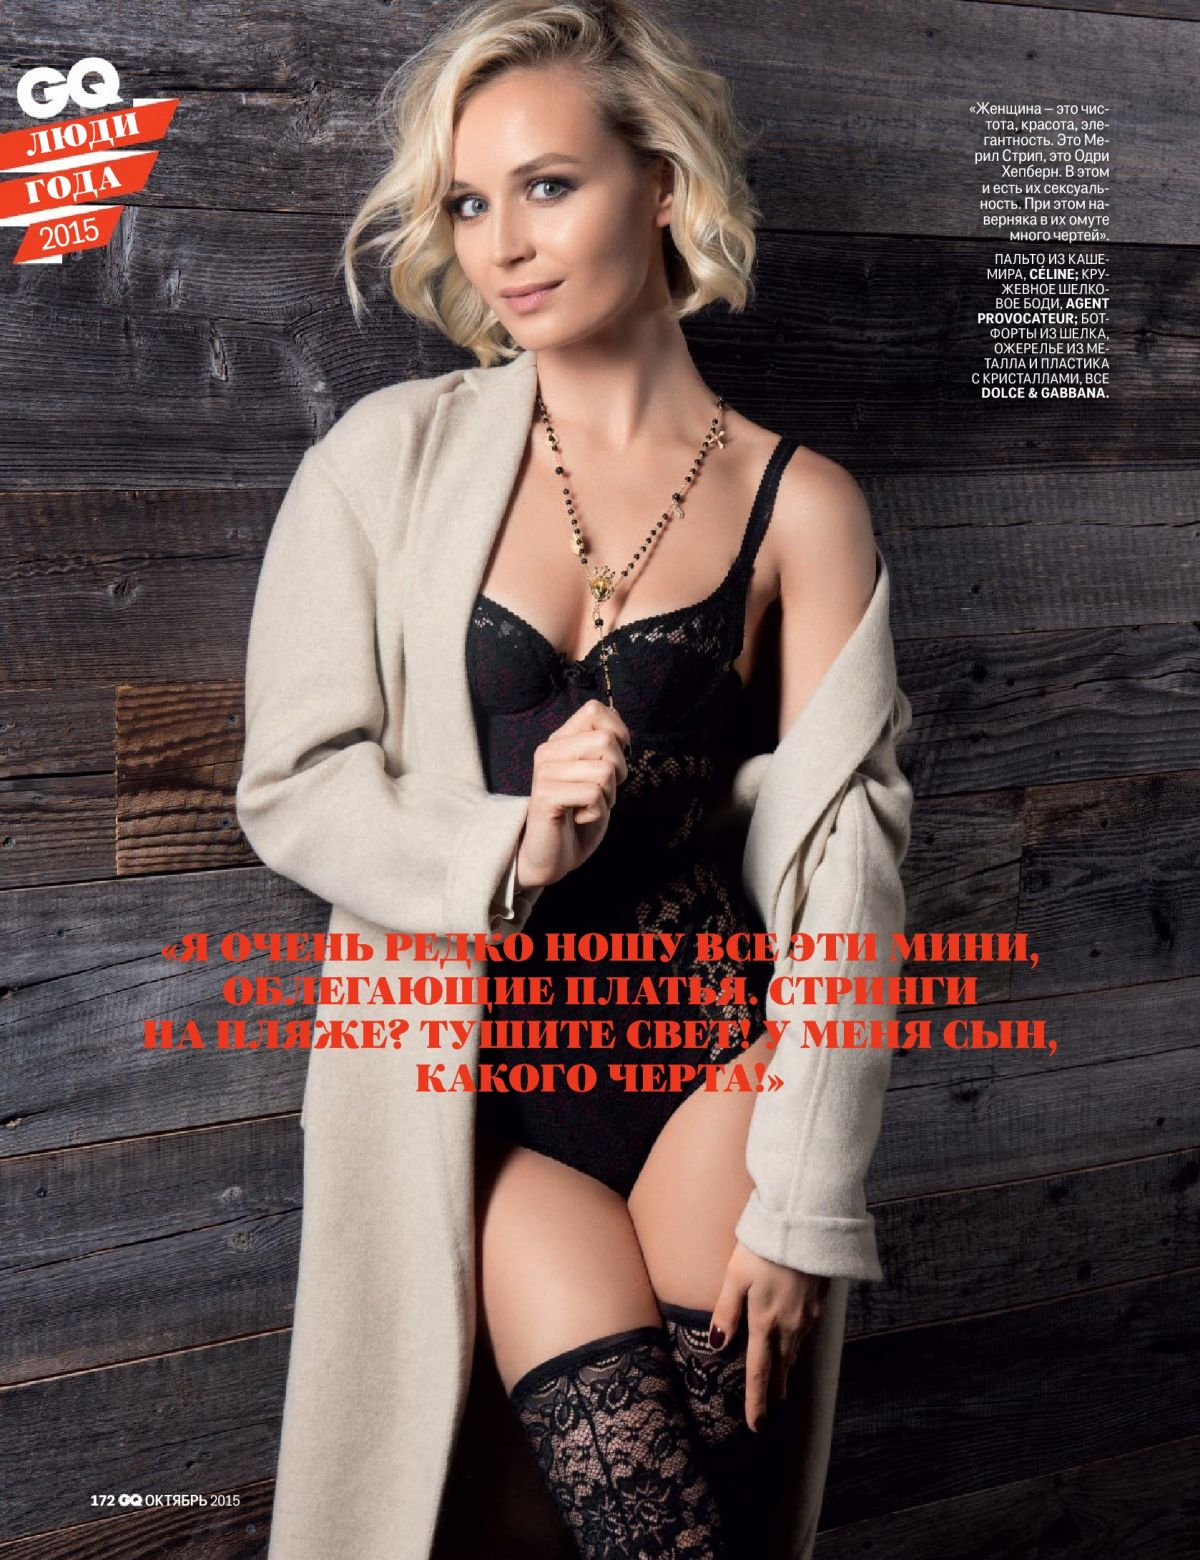 POLINA GAGARINA in GQ Magaine, Russia October 2015 Issue